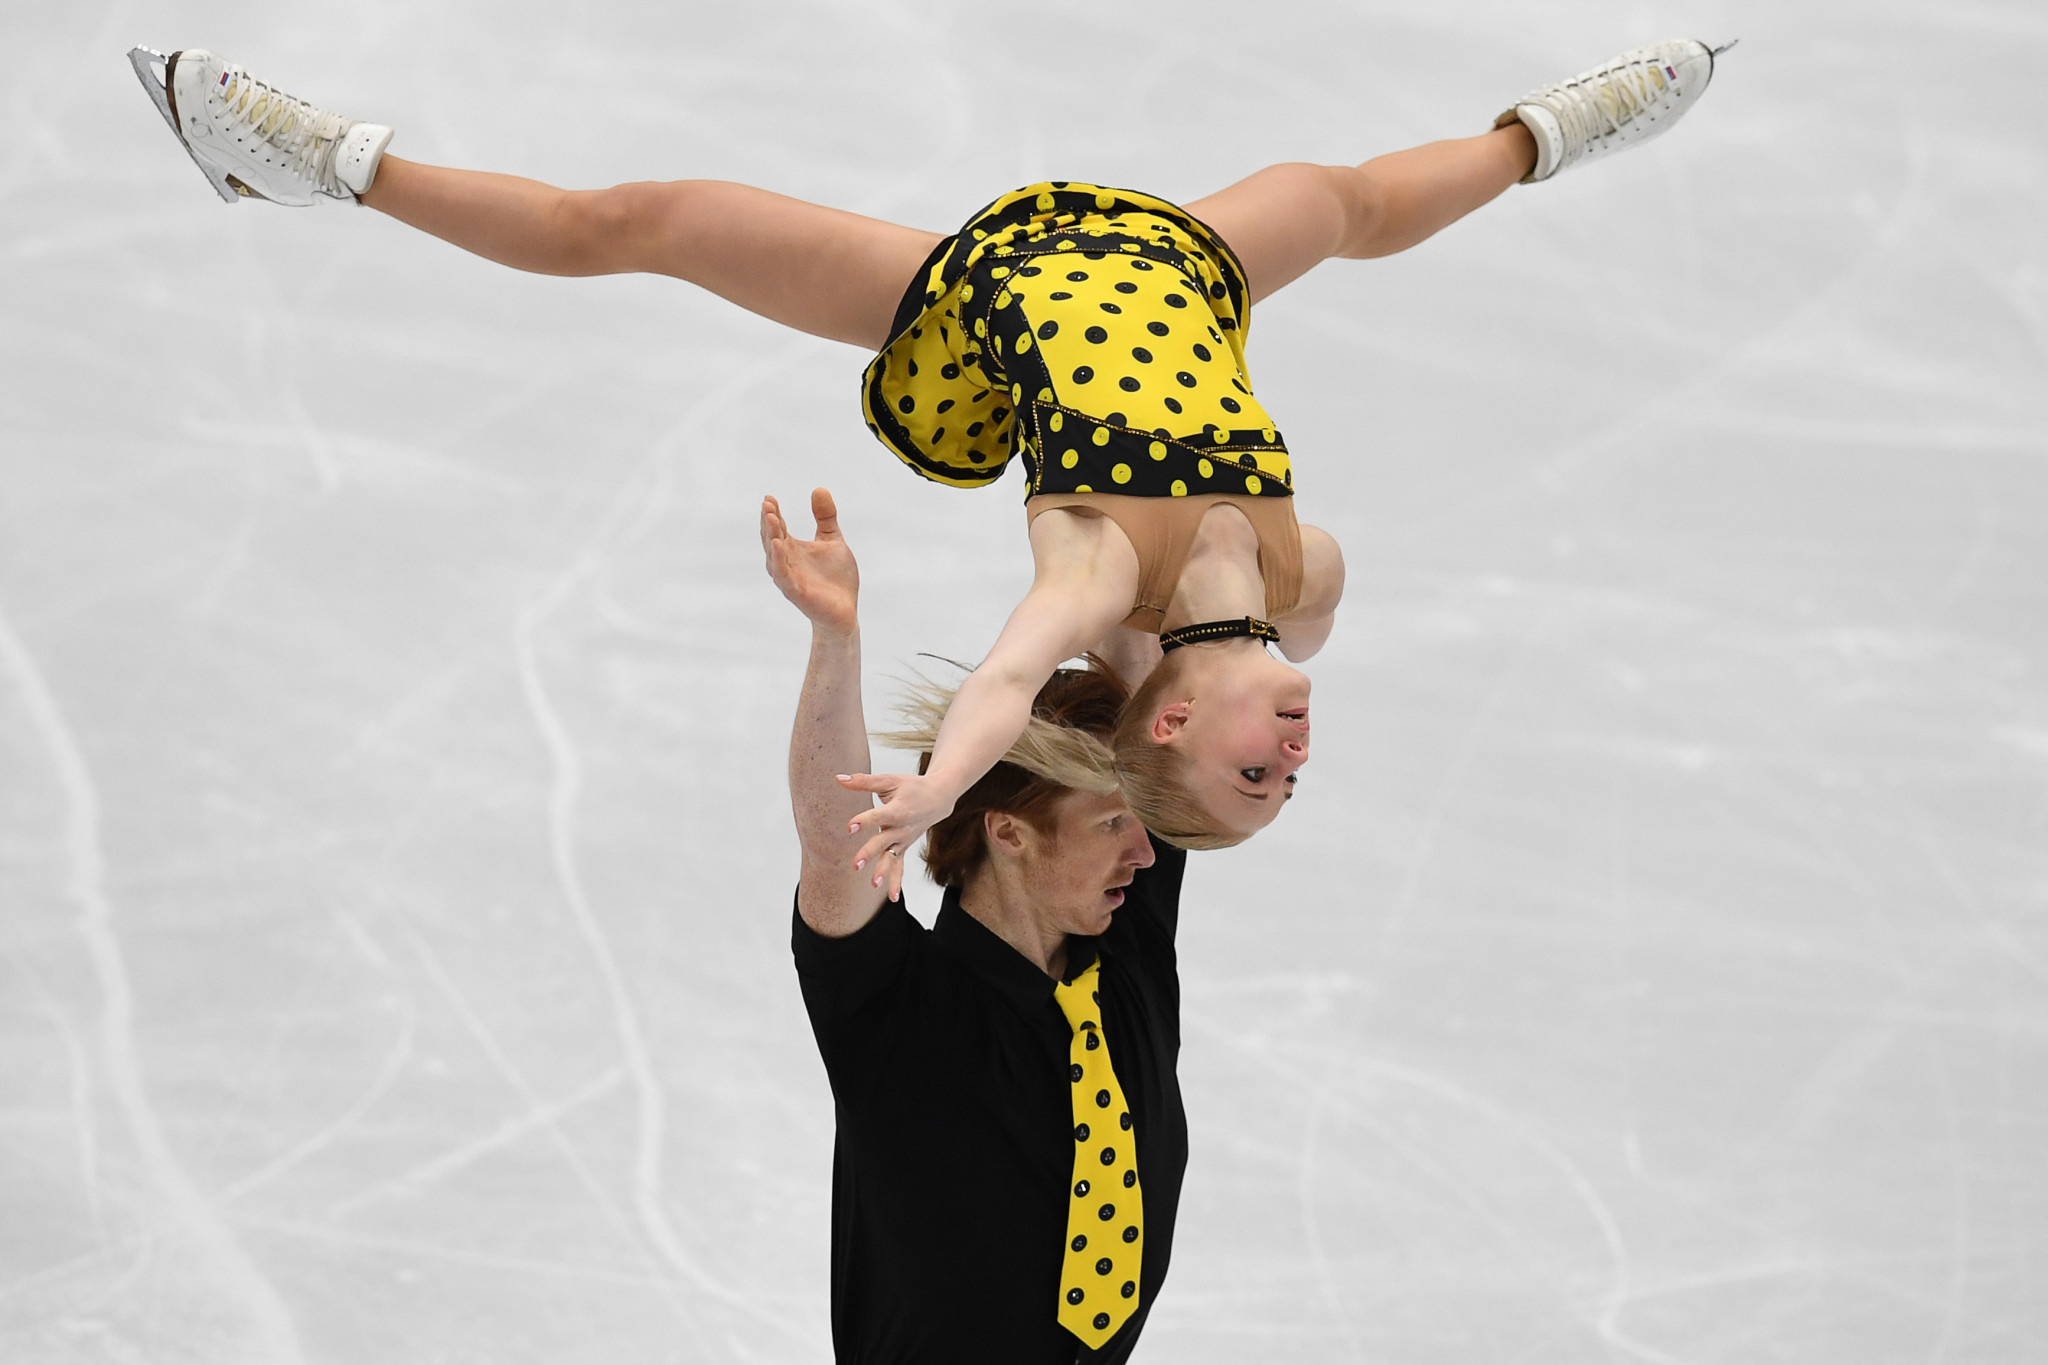 Morozov and Evgenia Tarasova have won two European pairs titles ©Getty Images